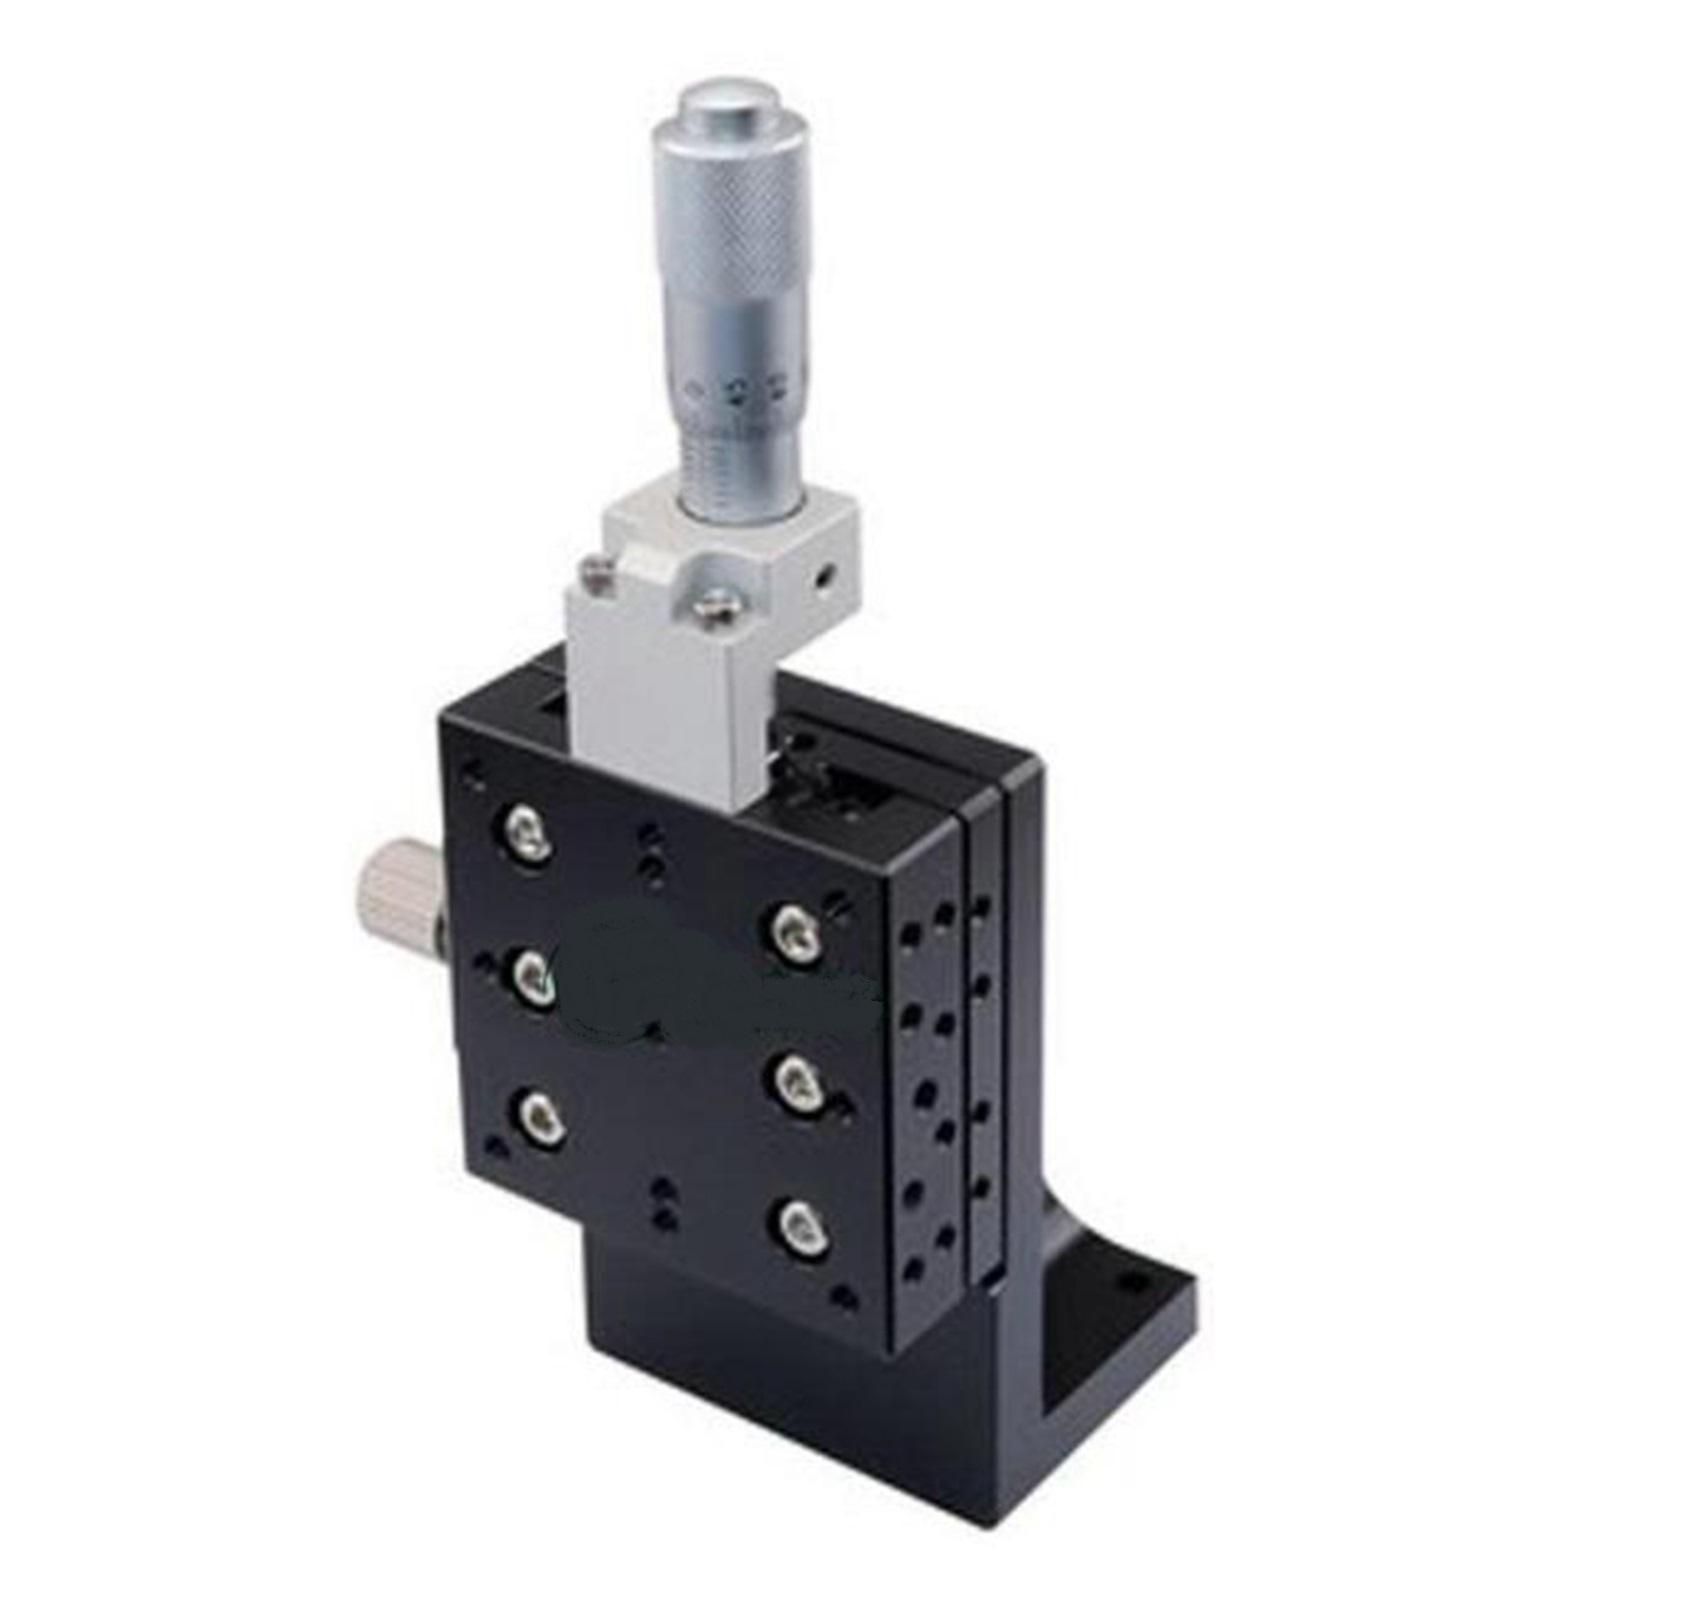 Z-axis 60X60mm Vertical Adjustable Precision Linear Stage Cross-roller Bearing For Automation Sliding Linear CNC Equipment z axis 40x40mm centre vertical precision linear stage cross roller bearing